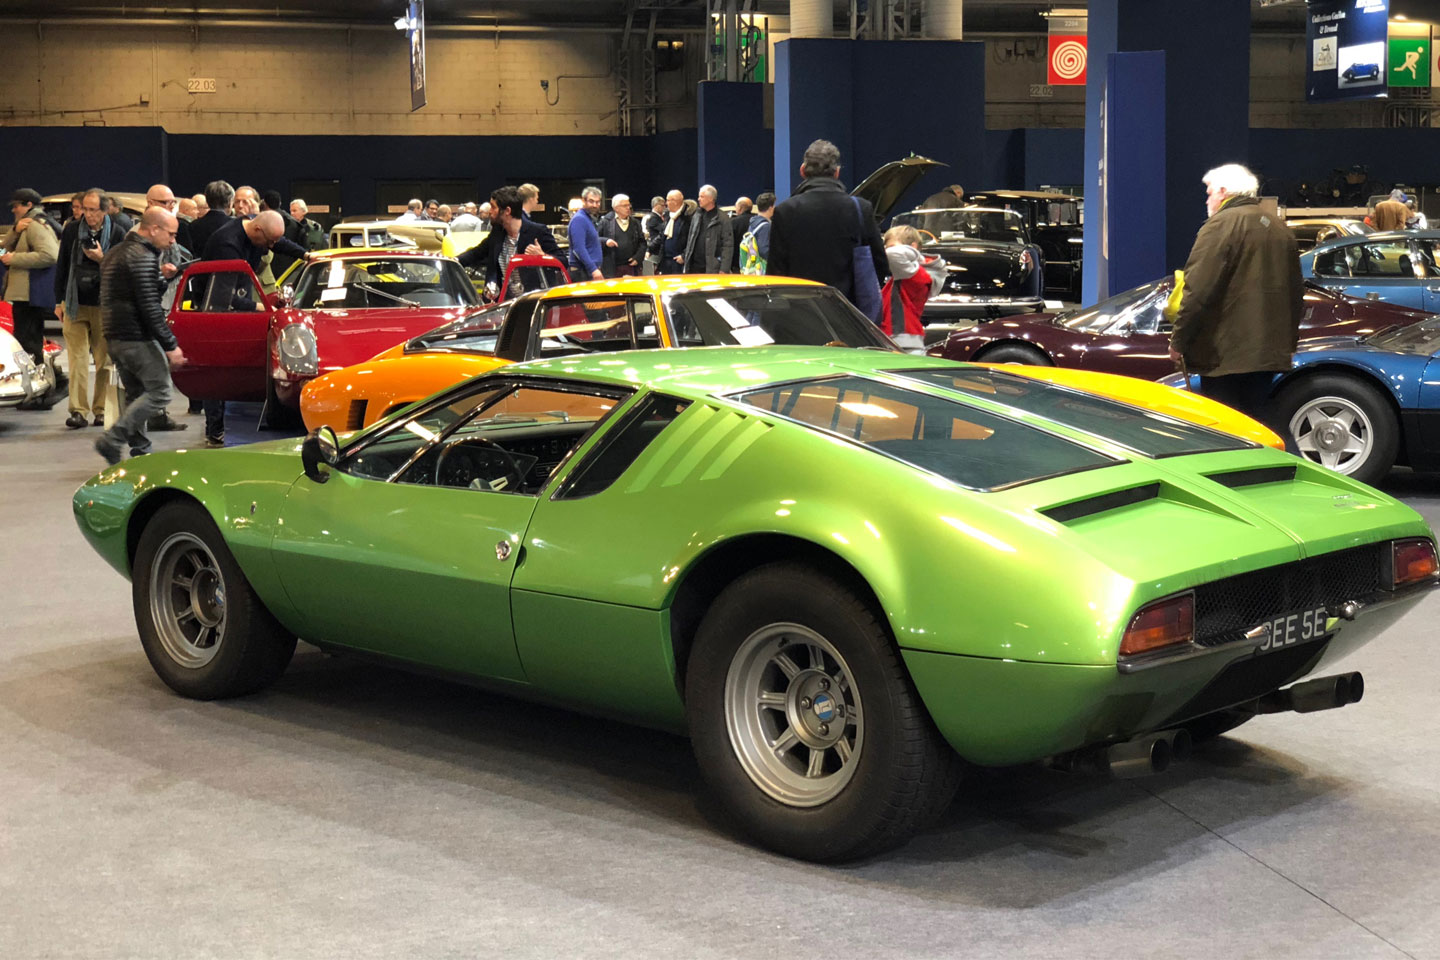 https://cdn2.hubspot.net/hubfs/347760/C_Blogs/Blog_Images/Retromobile%202018/Untitled-1.jpg